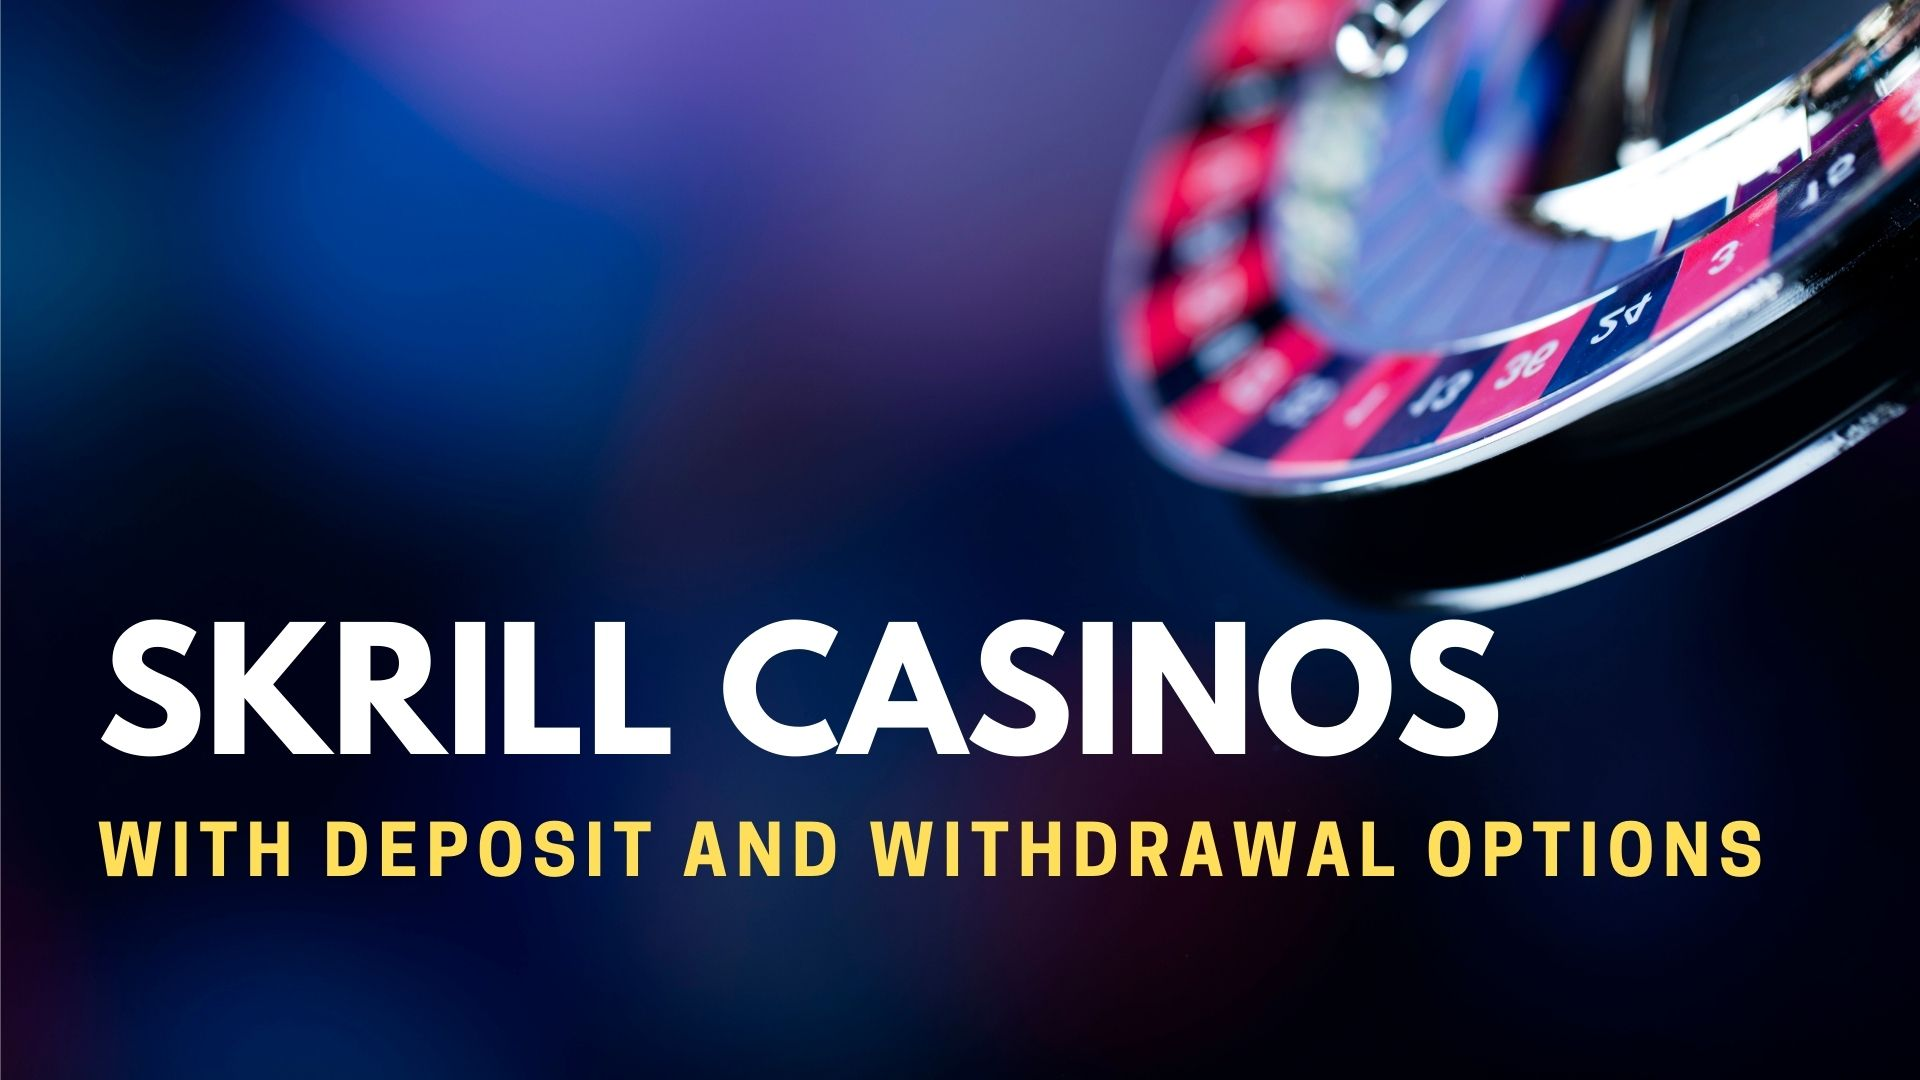 Skrill Casinos With Deposit And Withdrawal Options